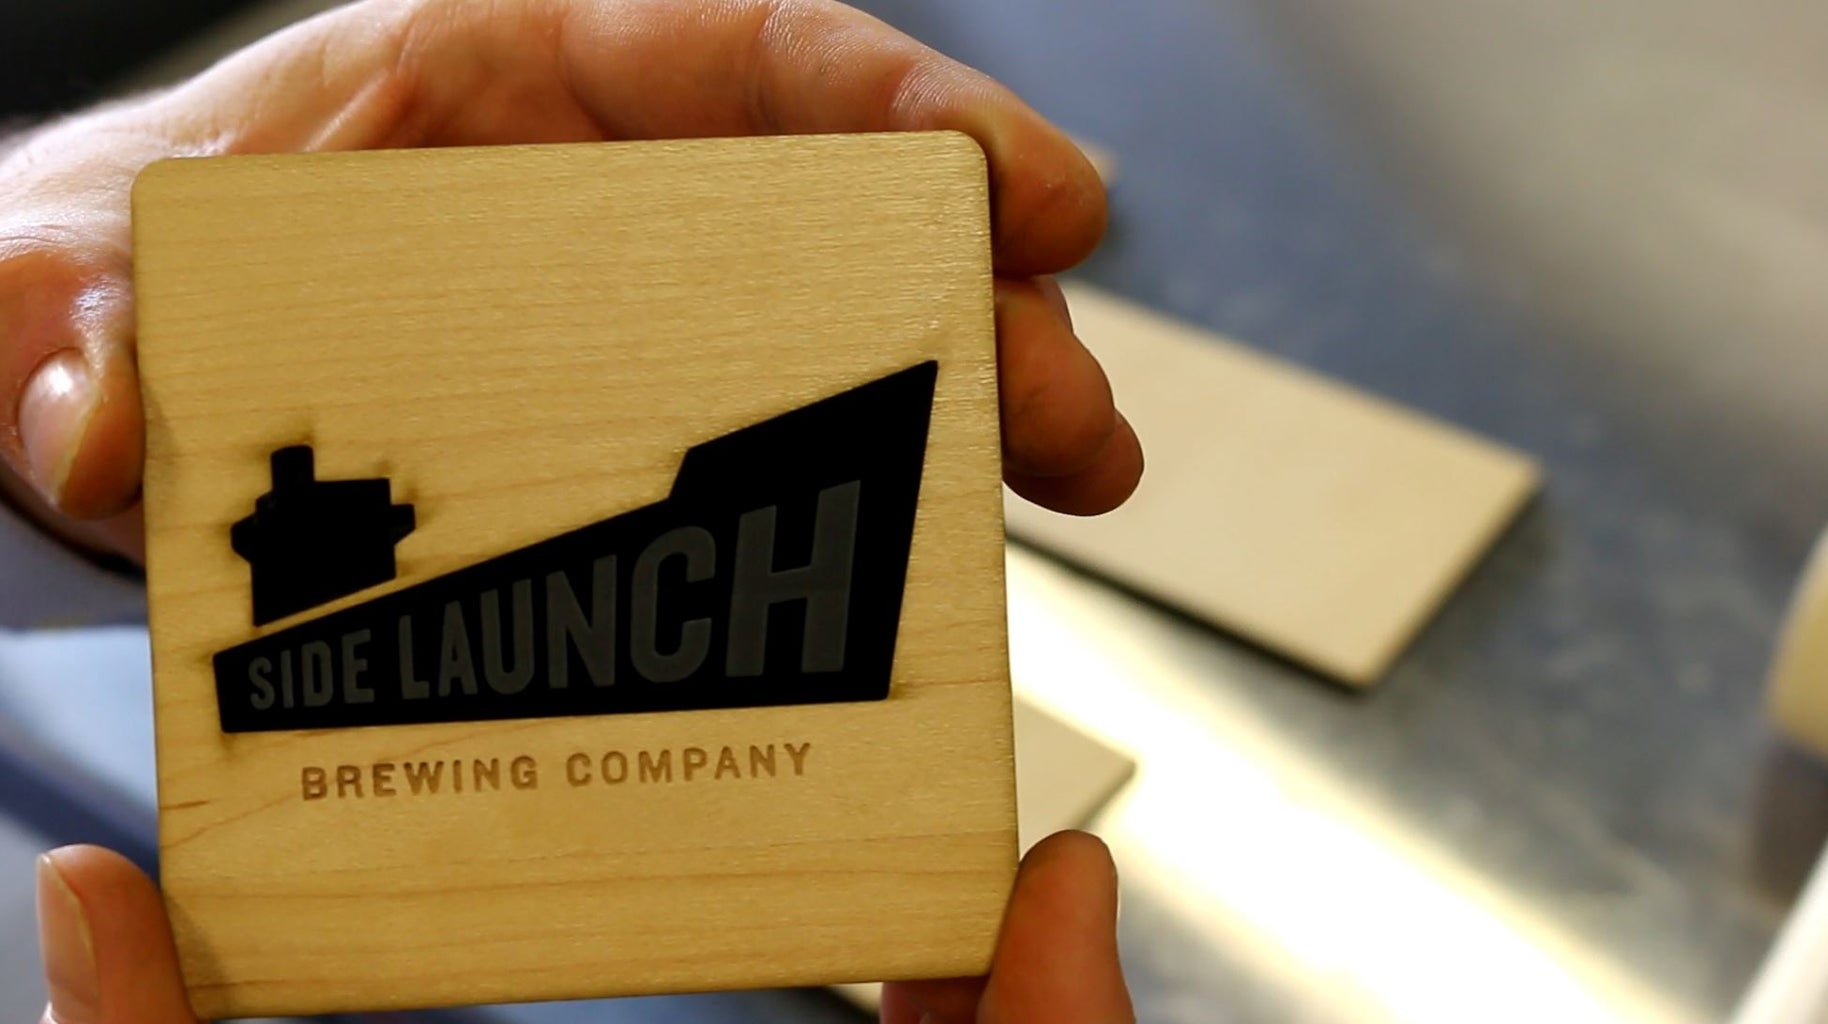 Coaster 9: Side Launch Brewing Company Inc.